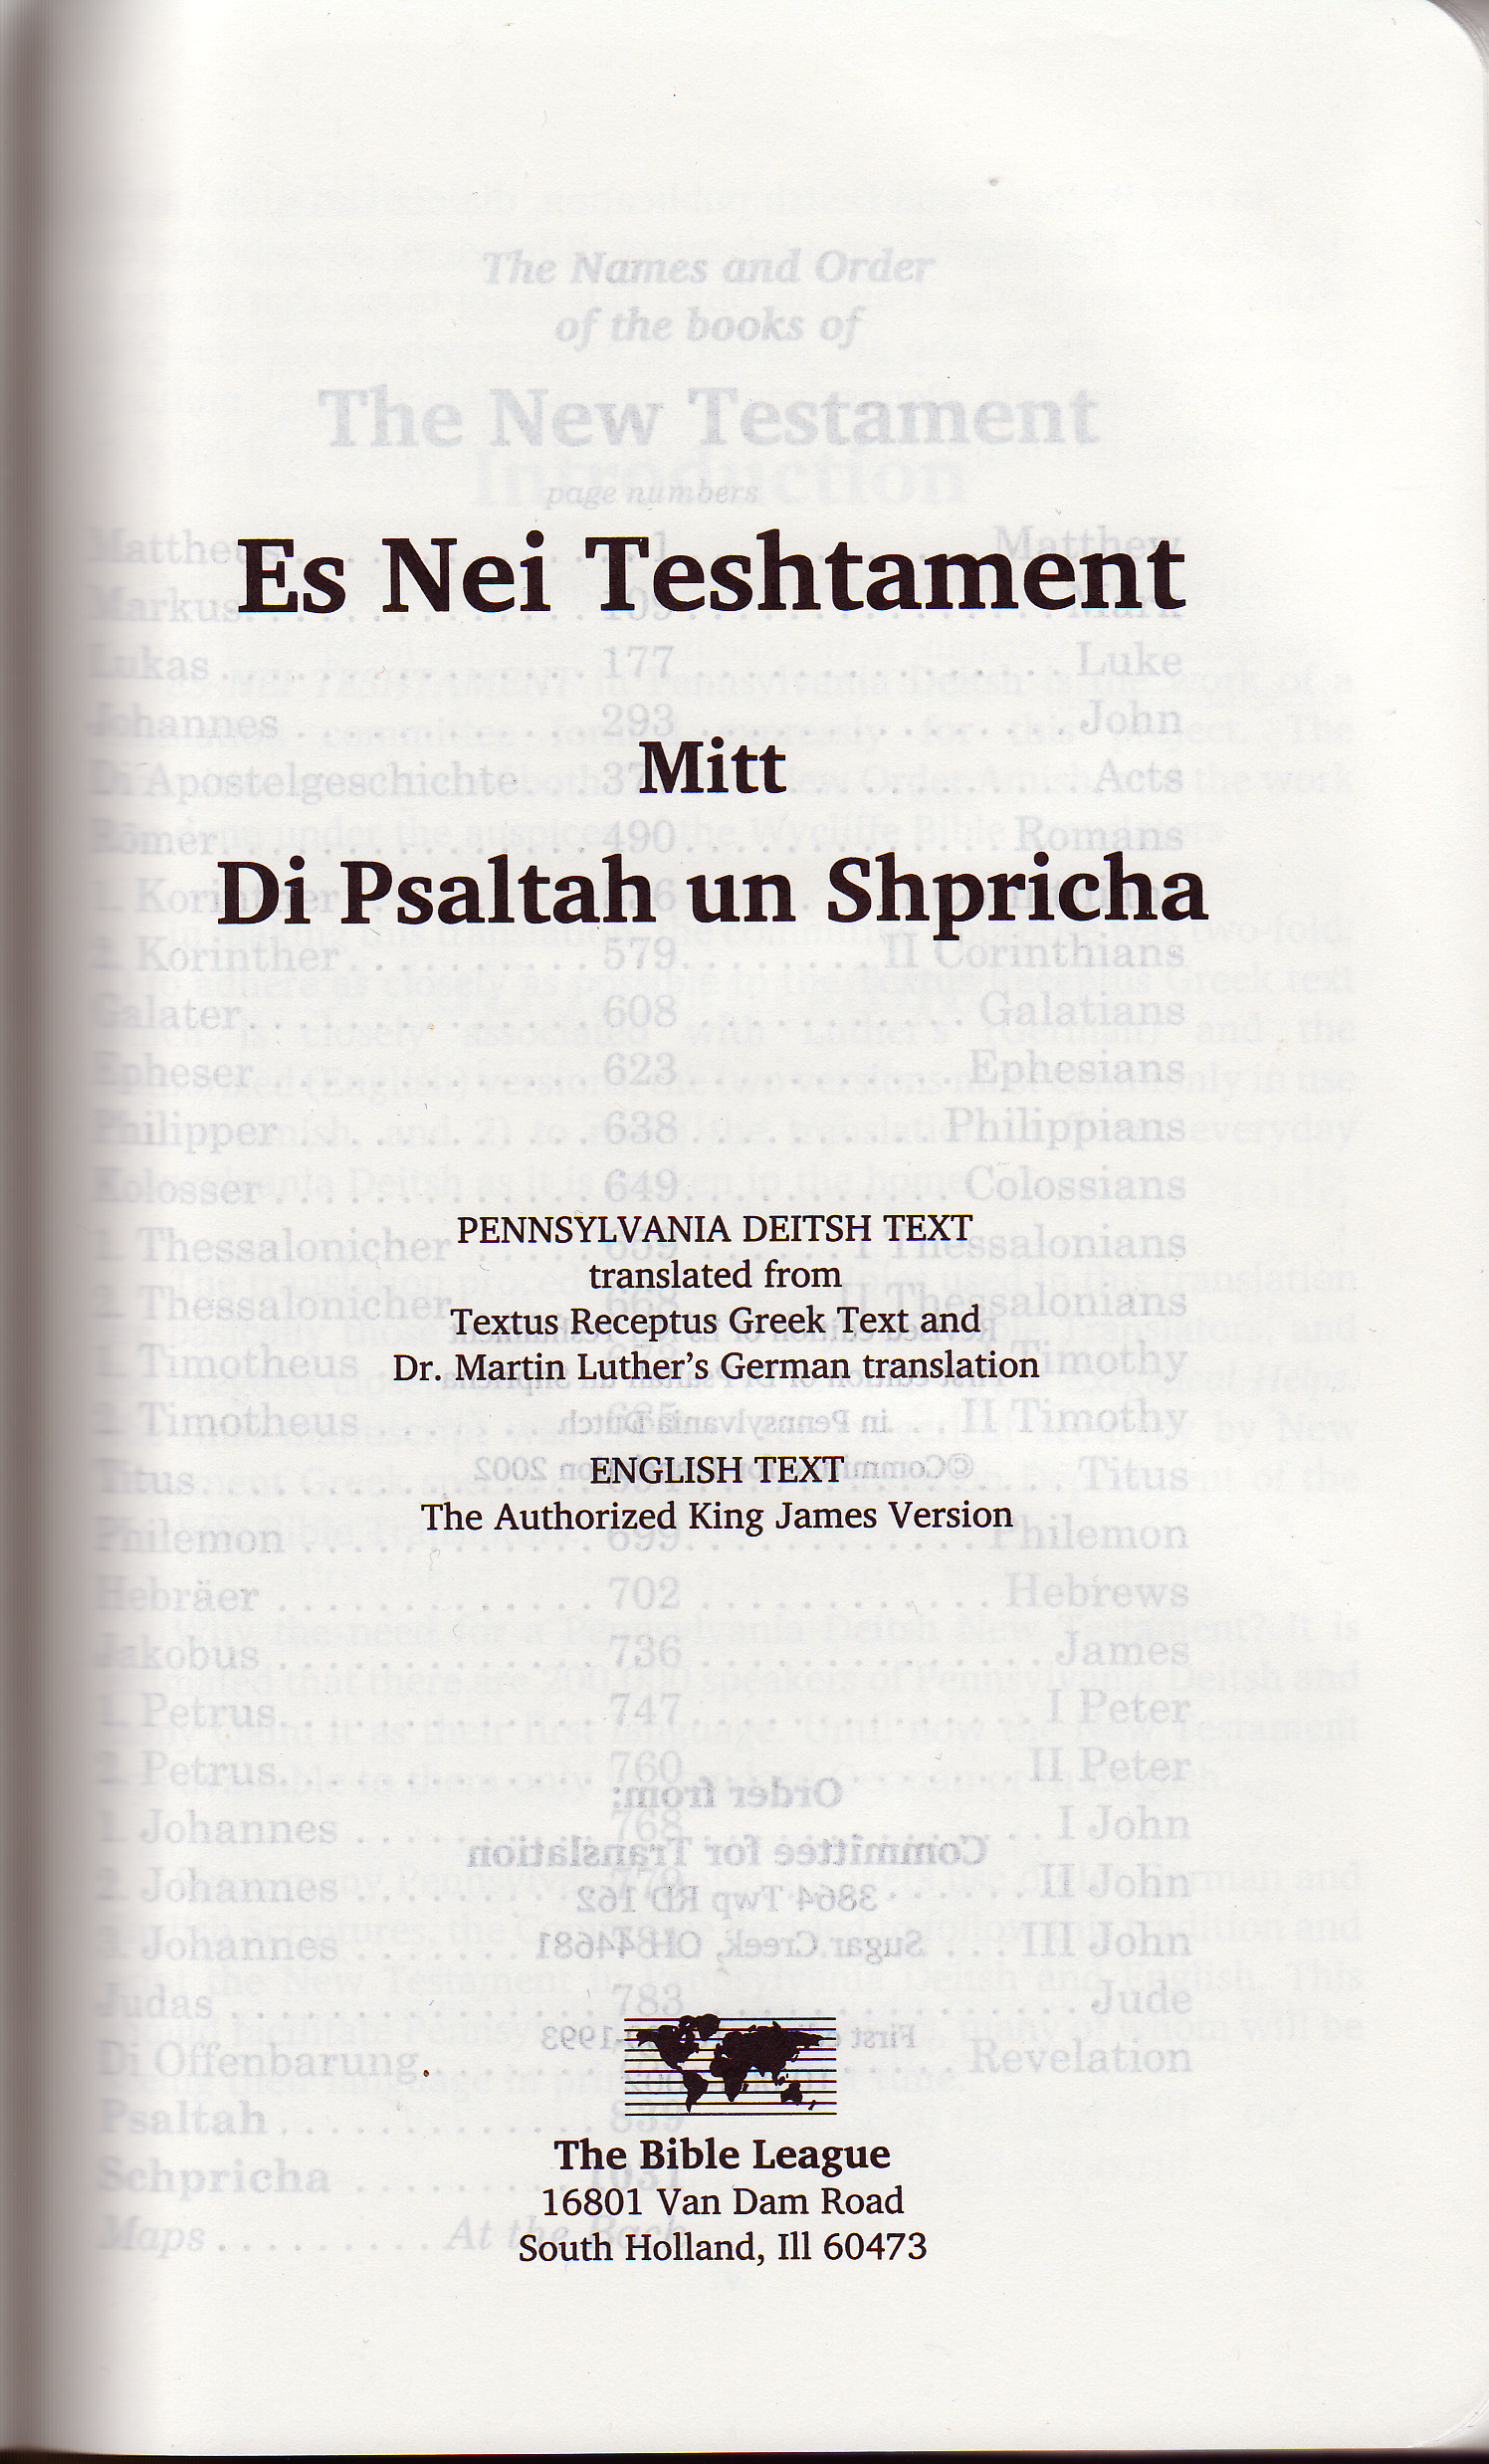 pennsylvania deitsh translation commitee internet bible catalog location collection bibelarchiv birnbaum karlsruhe baden comments flexcover octavo viii 1094 and 14 pp introduction pronunciation guide